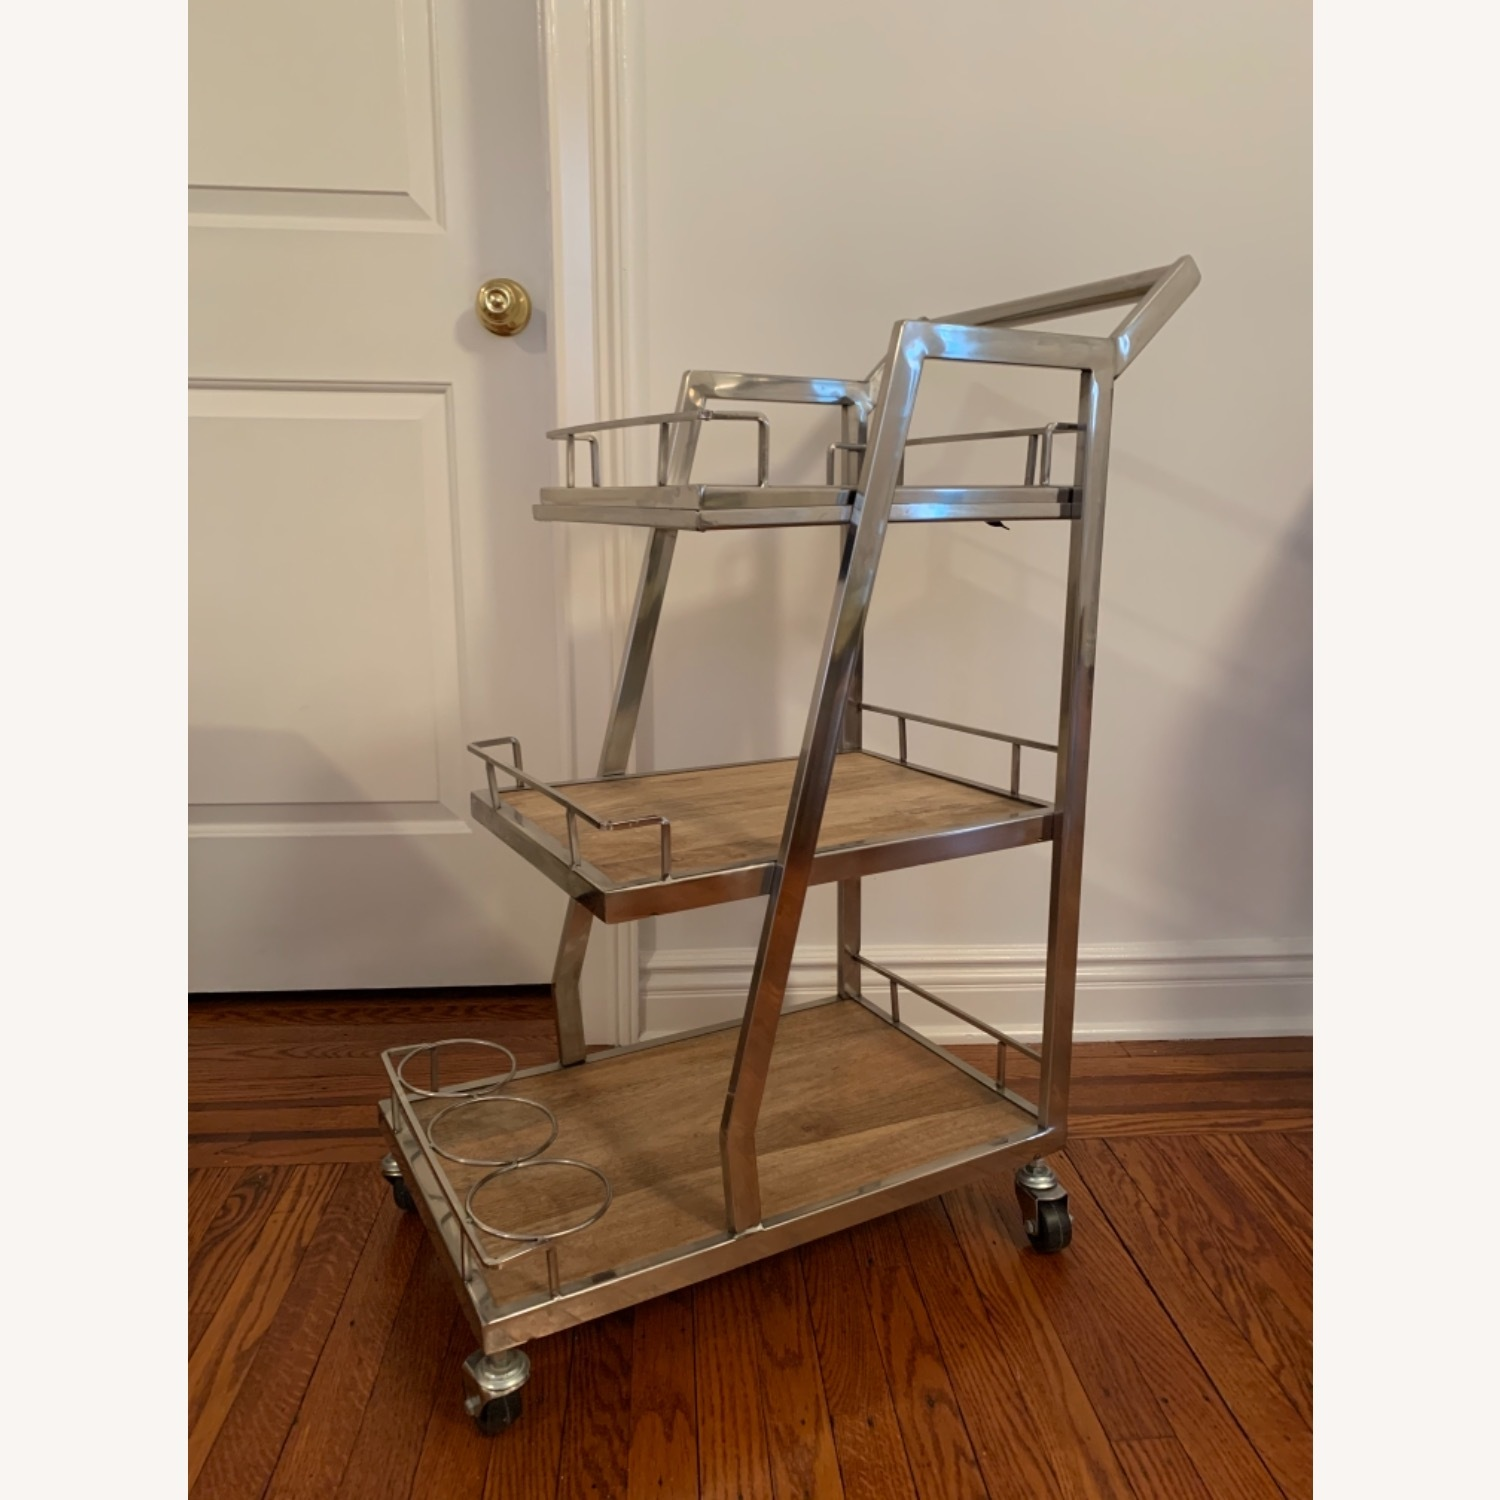 3 Tier Silver And Wood Bar Service Cart - image-2